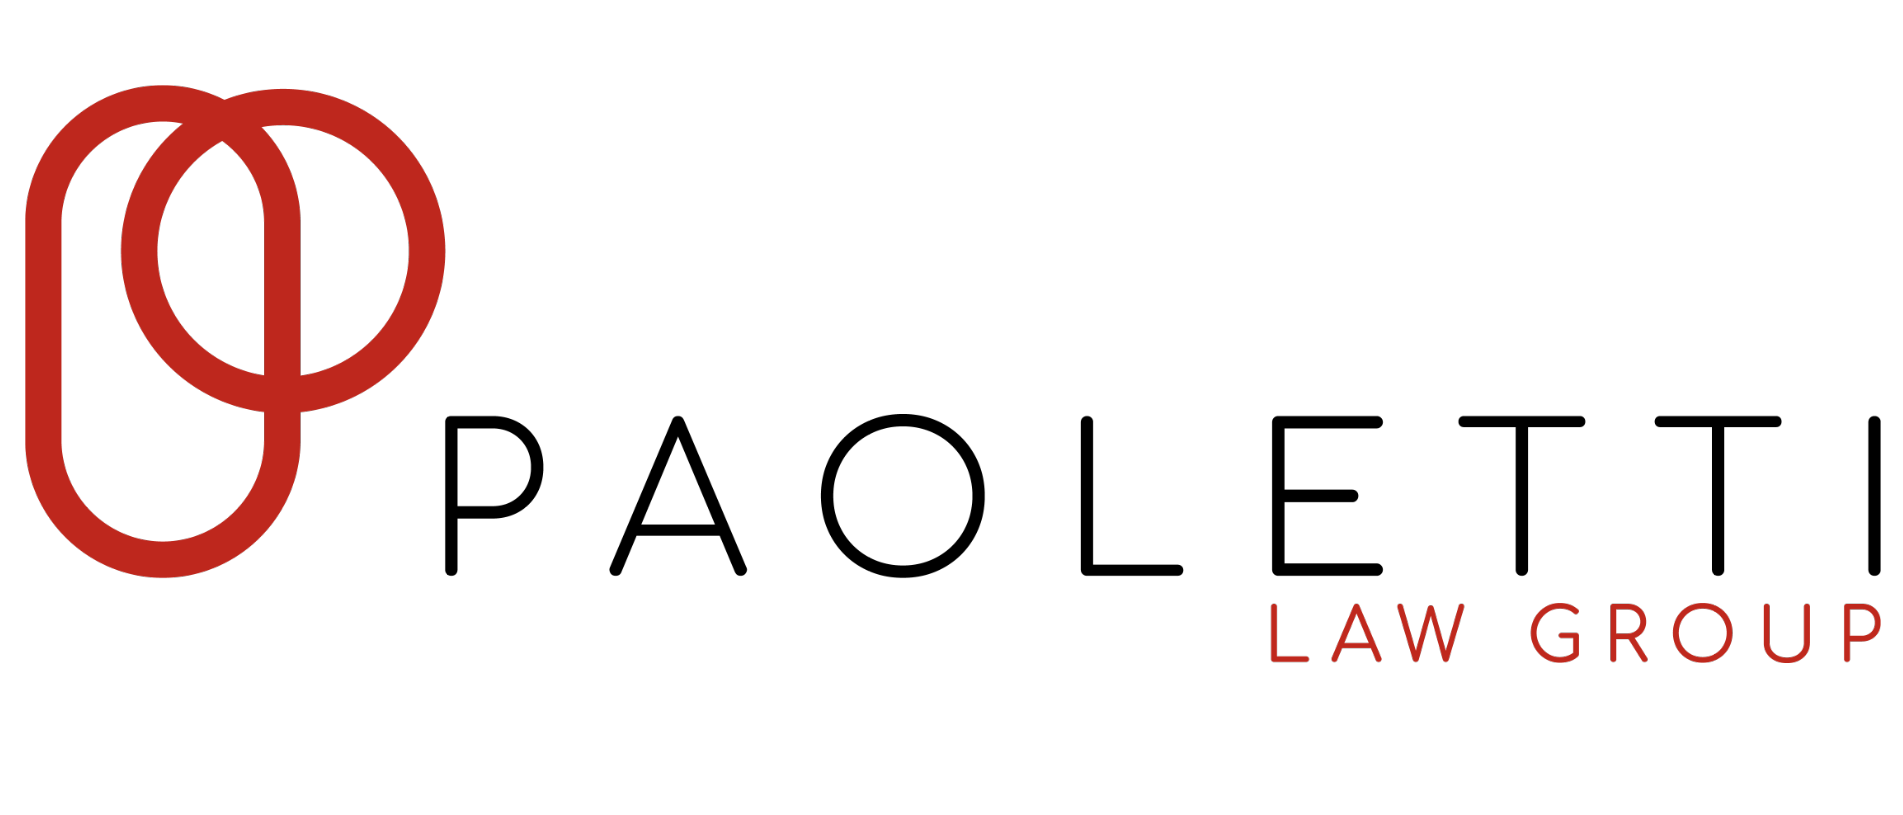 Paoletti Legal Consultant logo